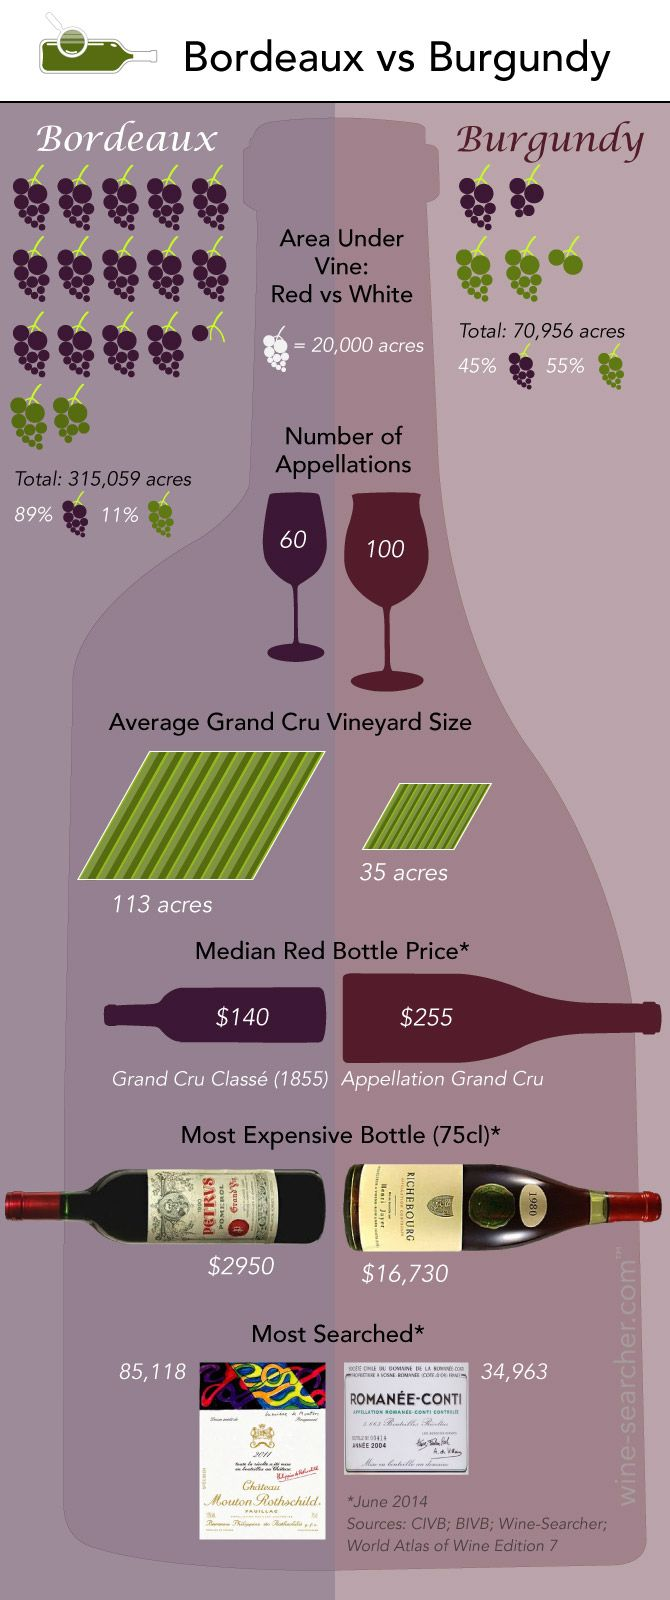 Often compared, yet so different, our latest infographic gives you the figures on these two great French wine regions: Bordeaux Vs Burgundy